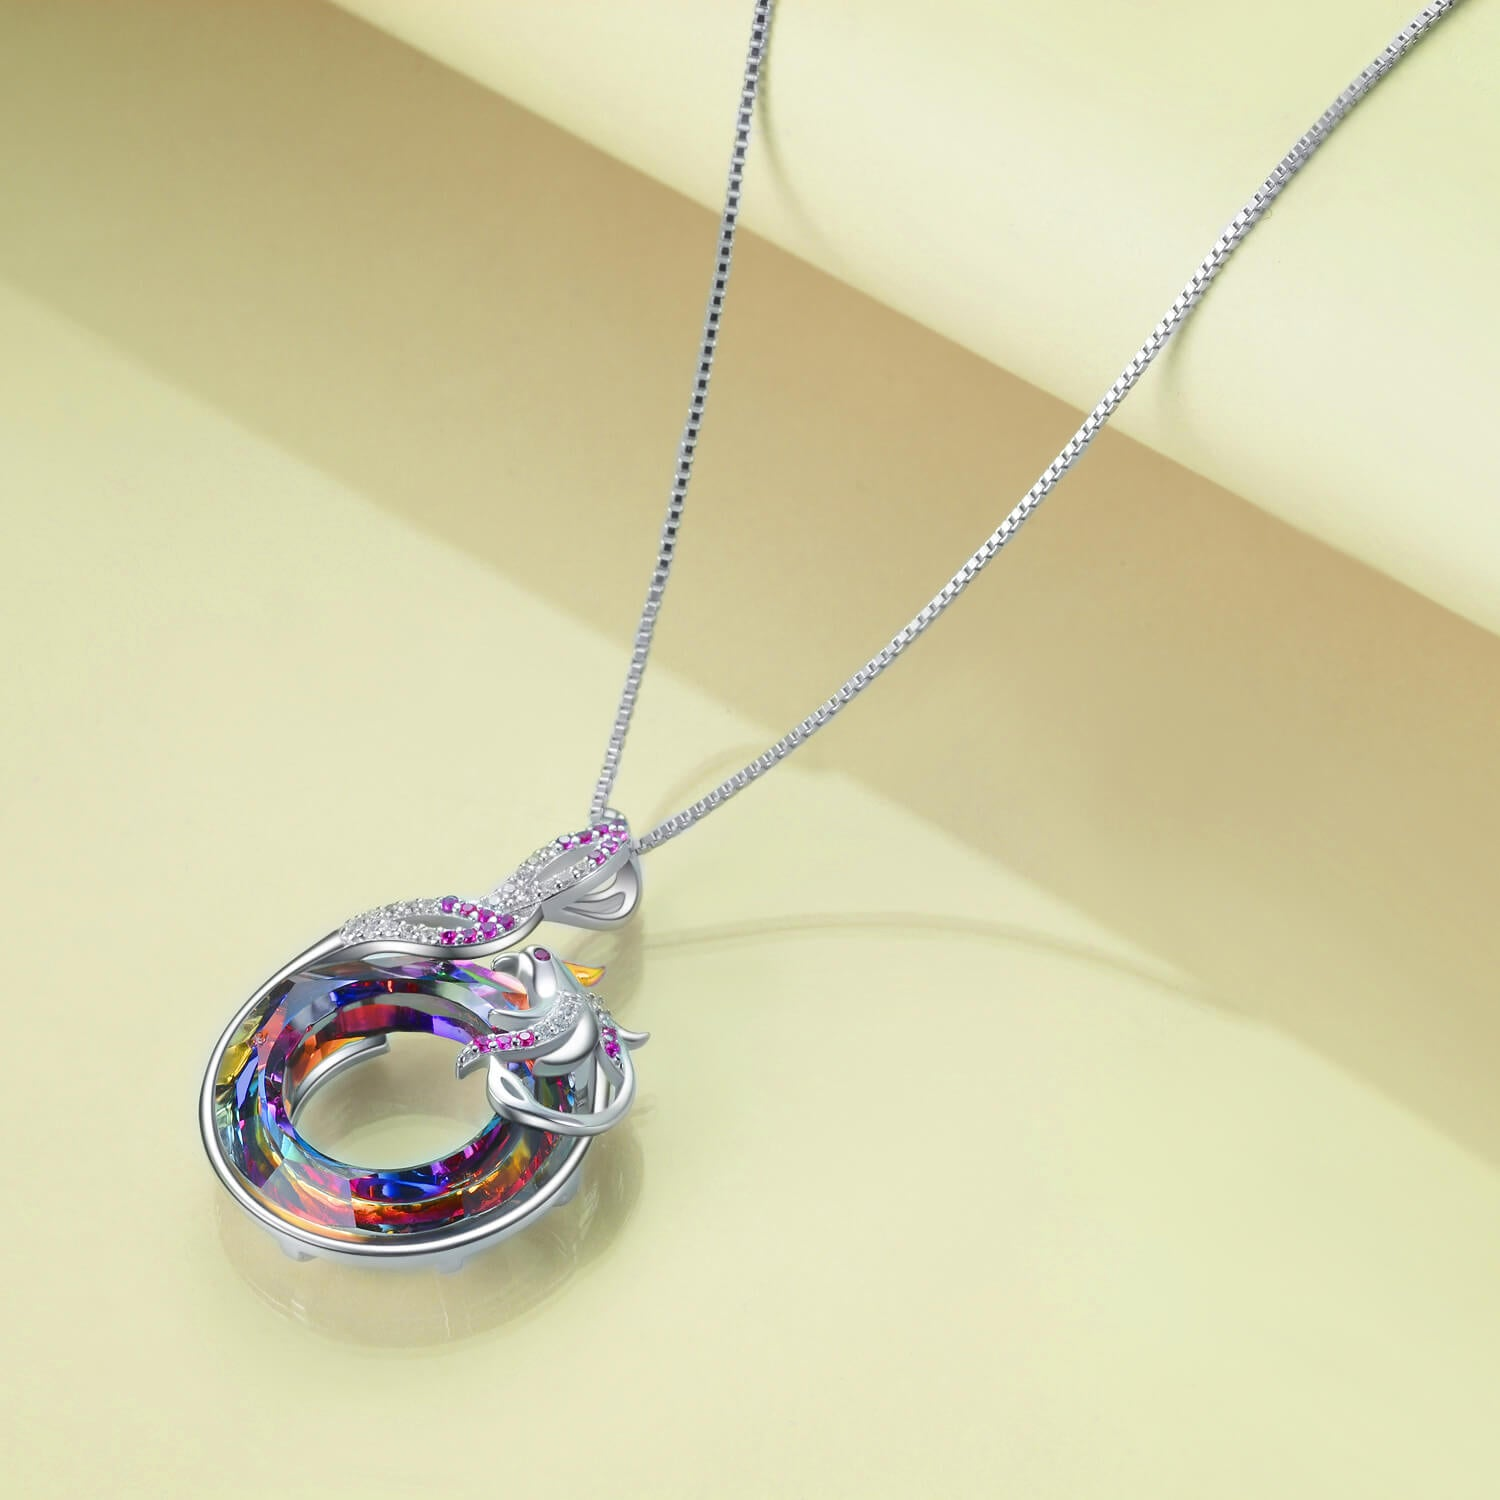 Nirvana of Phoenix with Swarovski Crystal Pendant Necklace Gift For Woman - onlyone